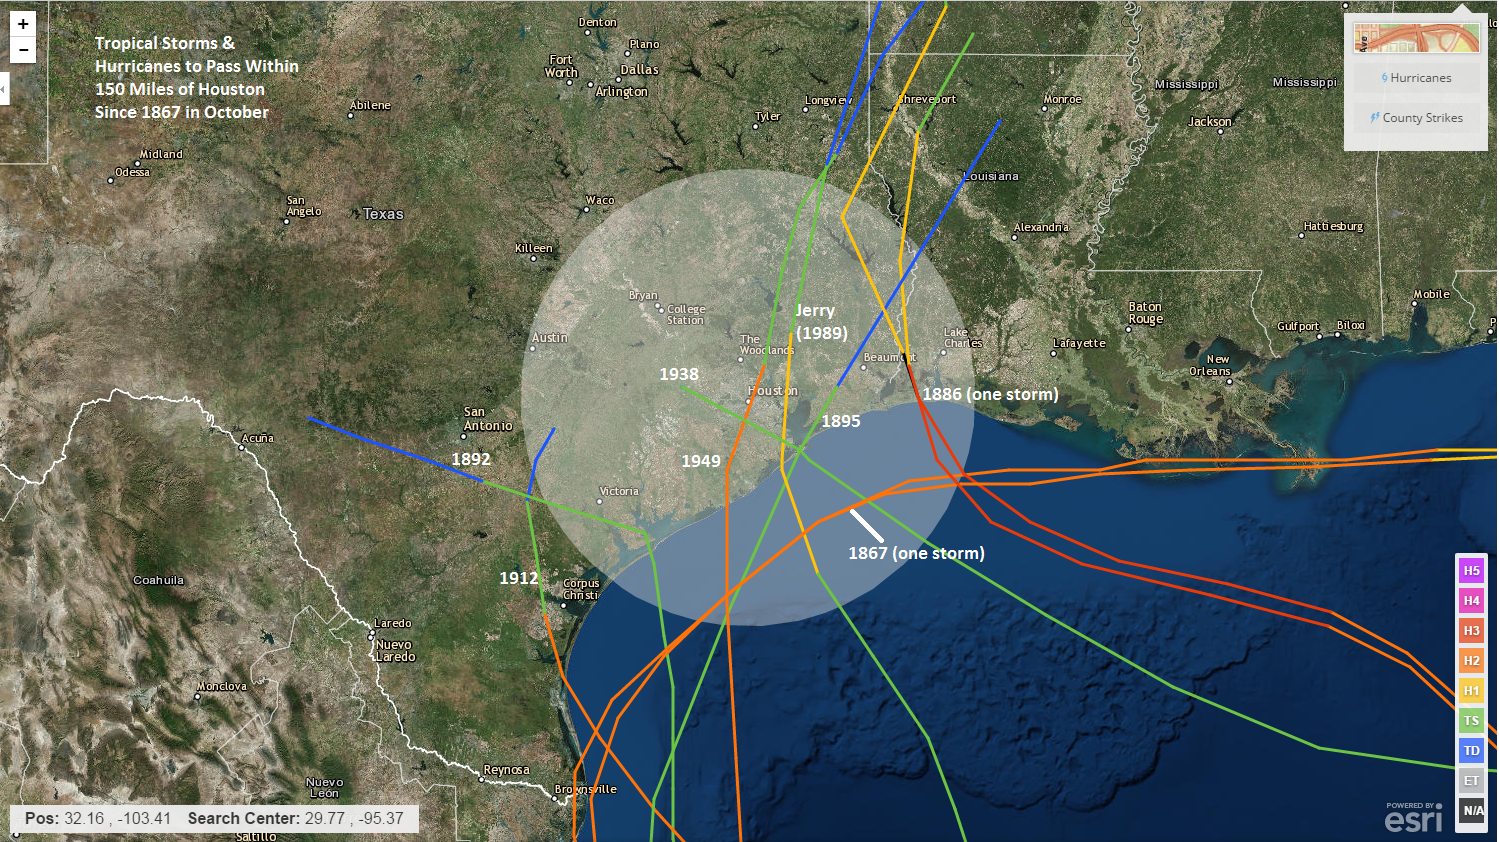 Storms to pass within 150 miles of Houston in October since the mid-1800s. (NOAA)